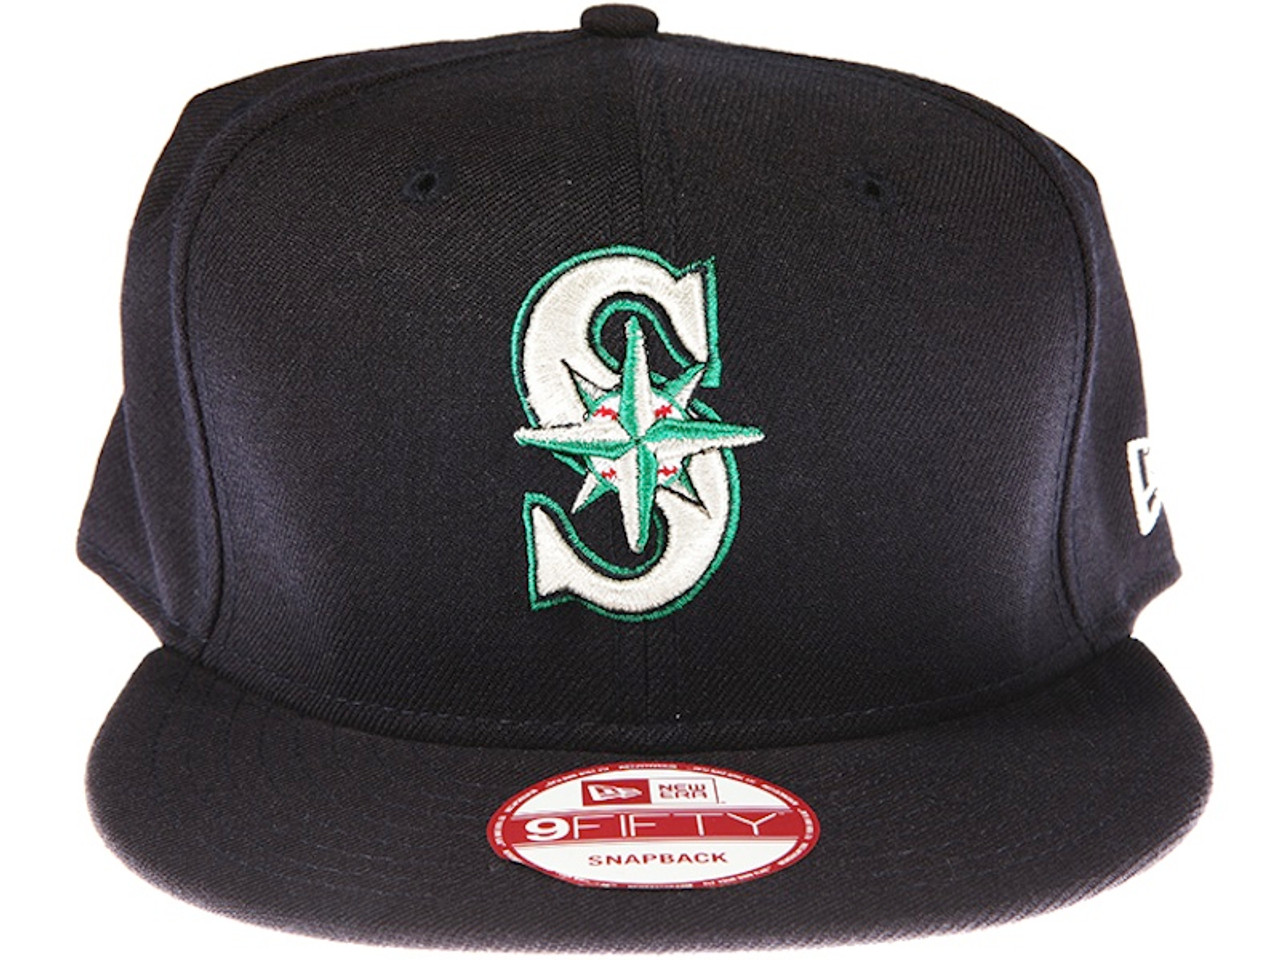 Seattle Mariners Navy Blue New Era 9FIFTY MLB Snapback Hat 0401157b2d73